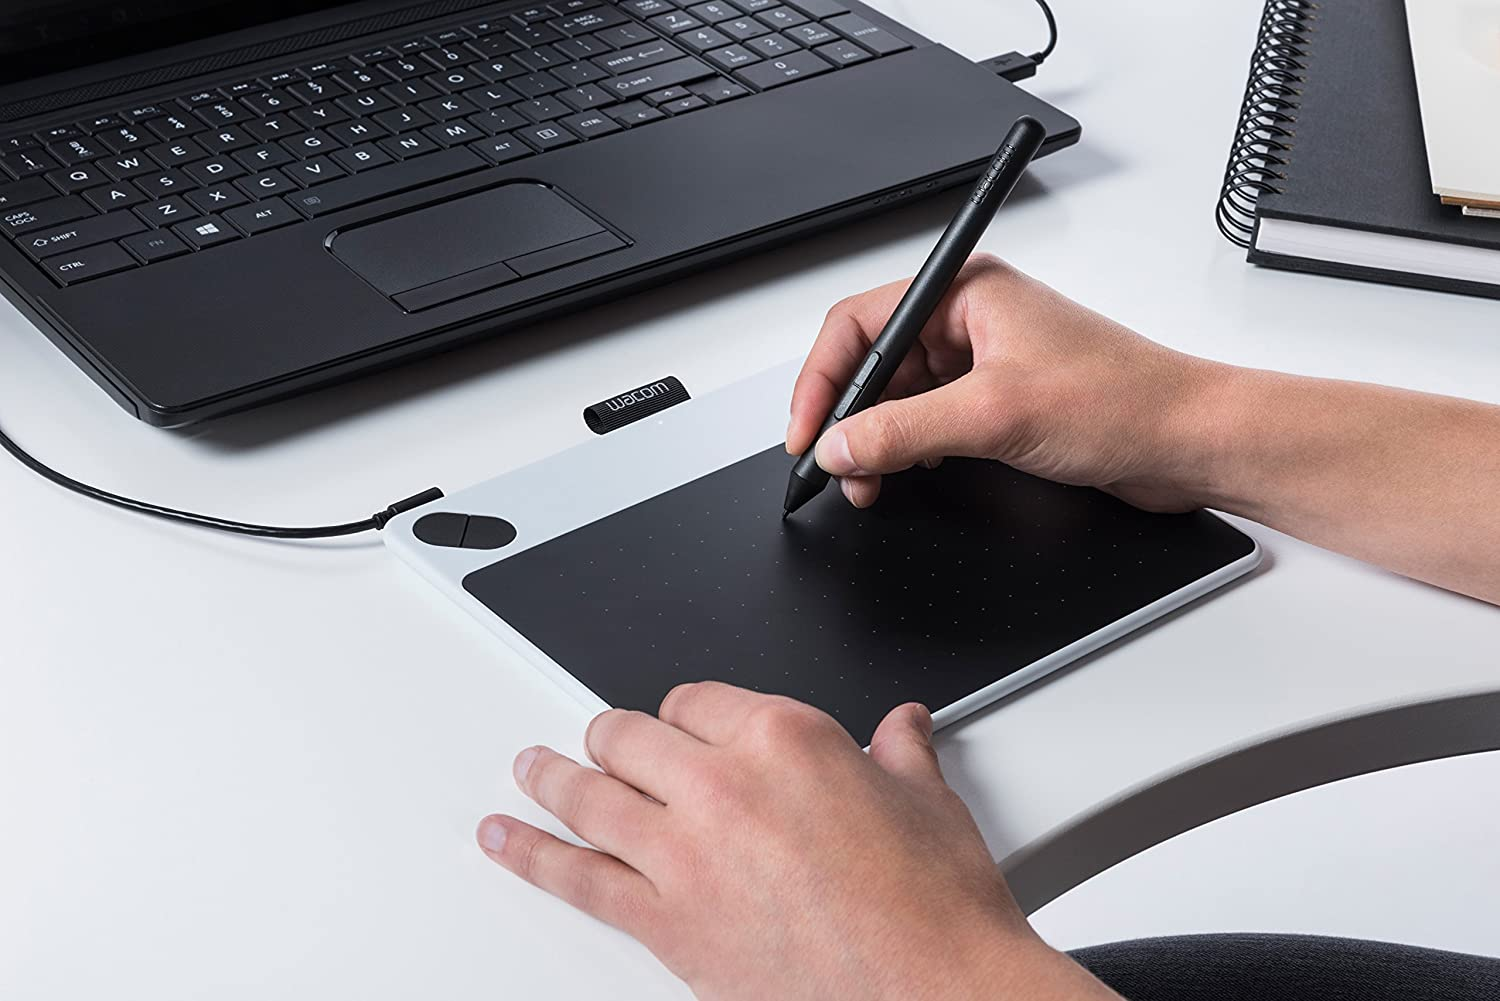 Compatible with Windows and Apple Small Graphic Tablet incl Size: S ArtRage Lite Software Download and the Precise Wacom Intuos Pen Wacom Intuos Draw Pen Tablet in White